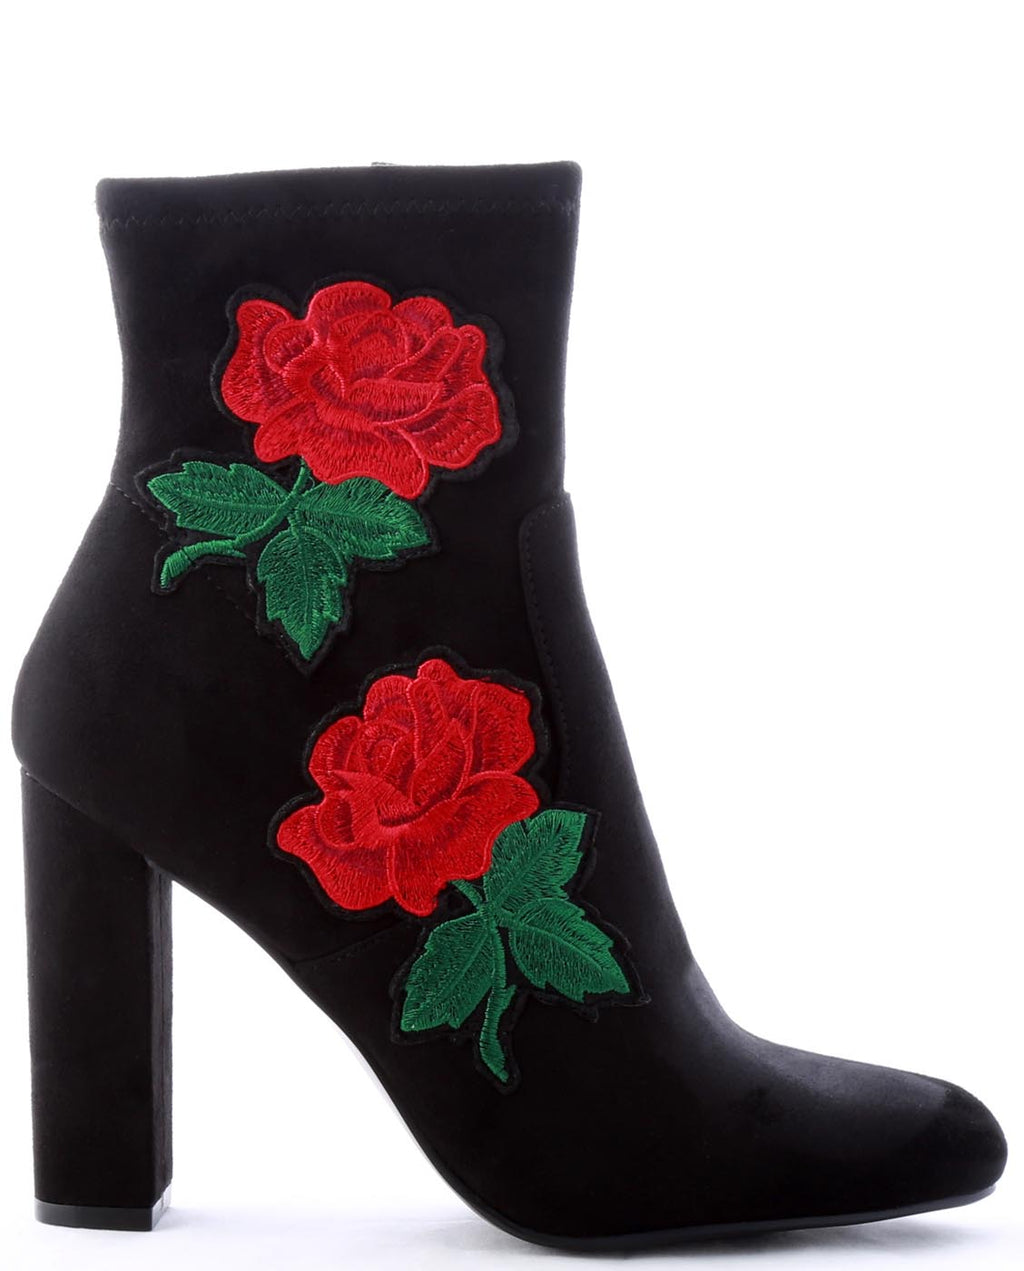 Dolce Vita Rose Booties - Fashion You Up